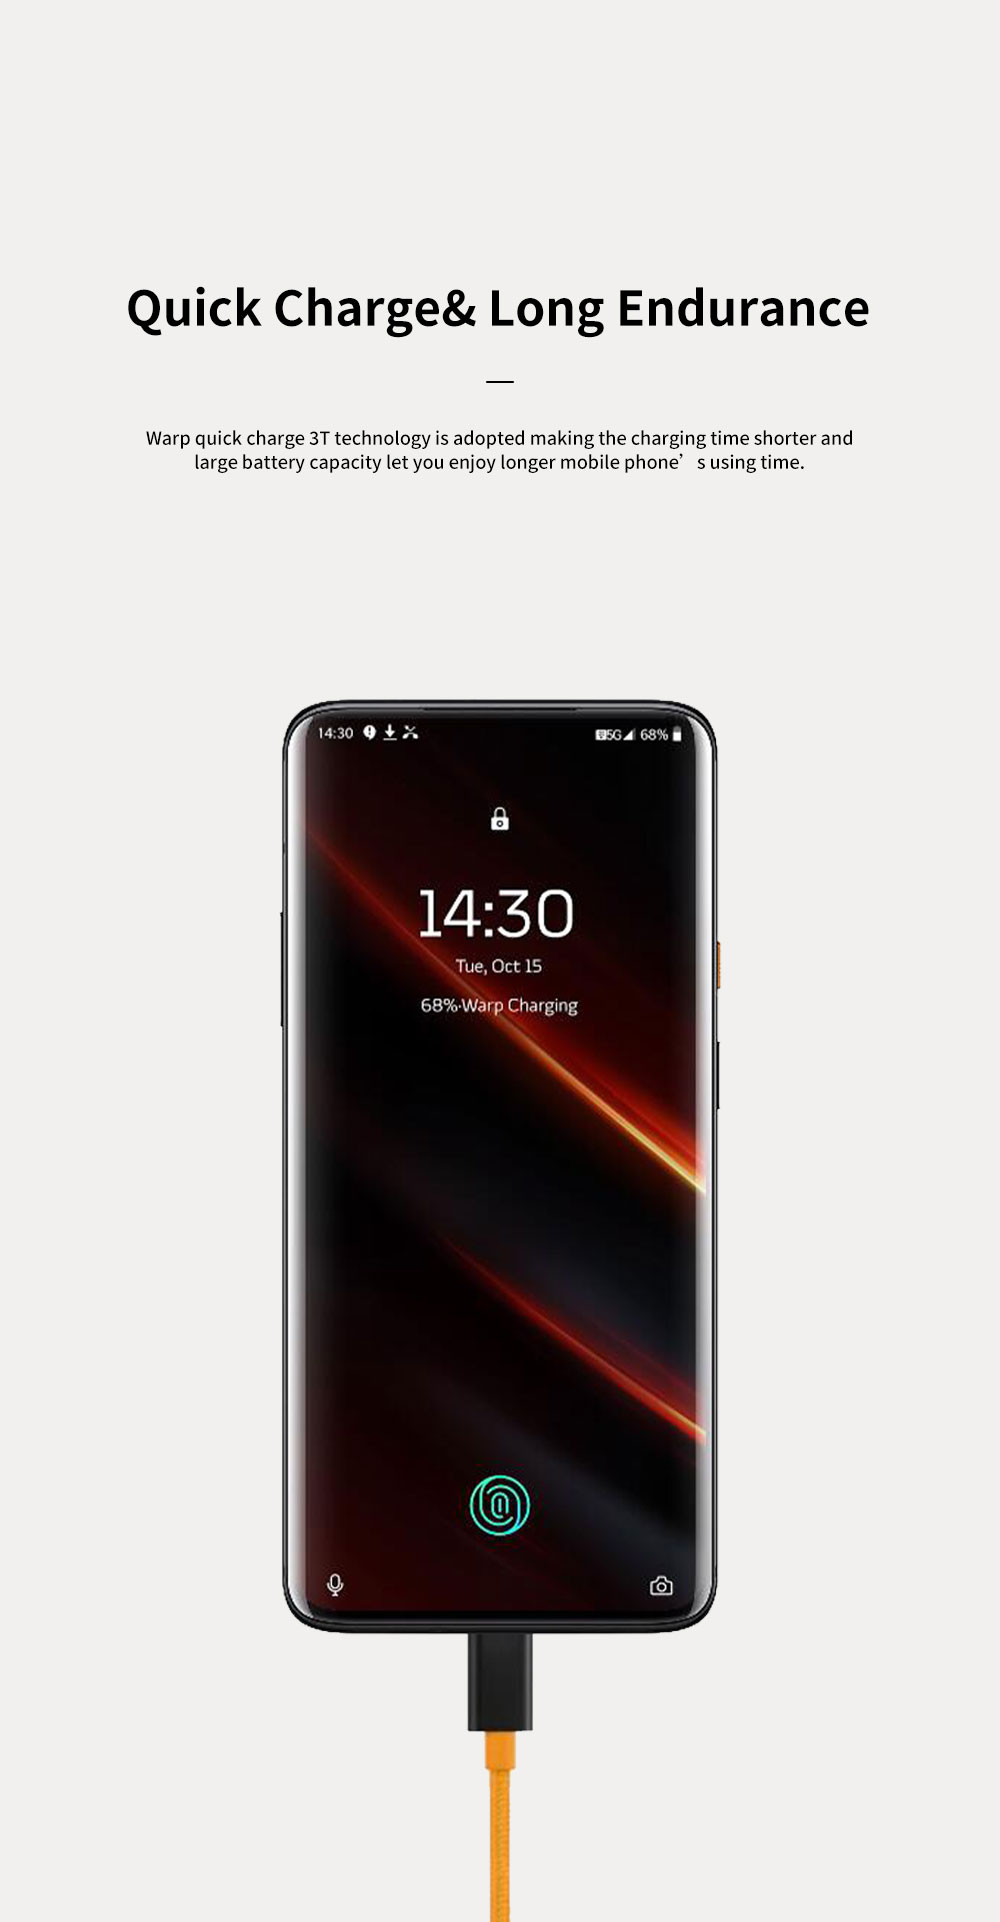 OnePlus 7T Pro Mobile Phone Smartphone with 2K+90Hz Screen 855 Snapdragon Processor 48 Million Camera Large Battery Capacity Haptic Vibrating Motor 10